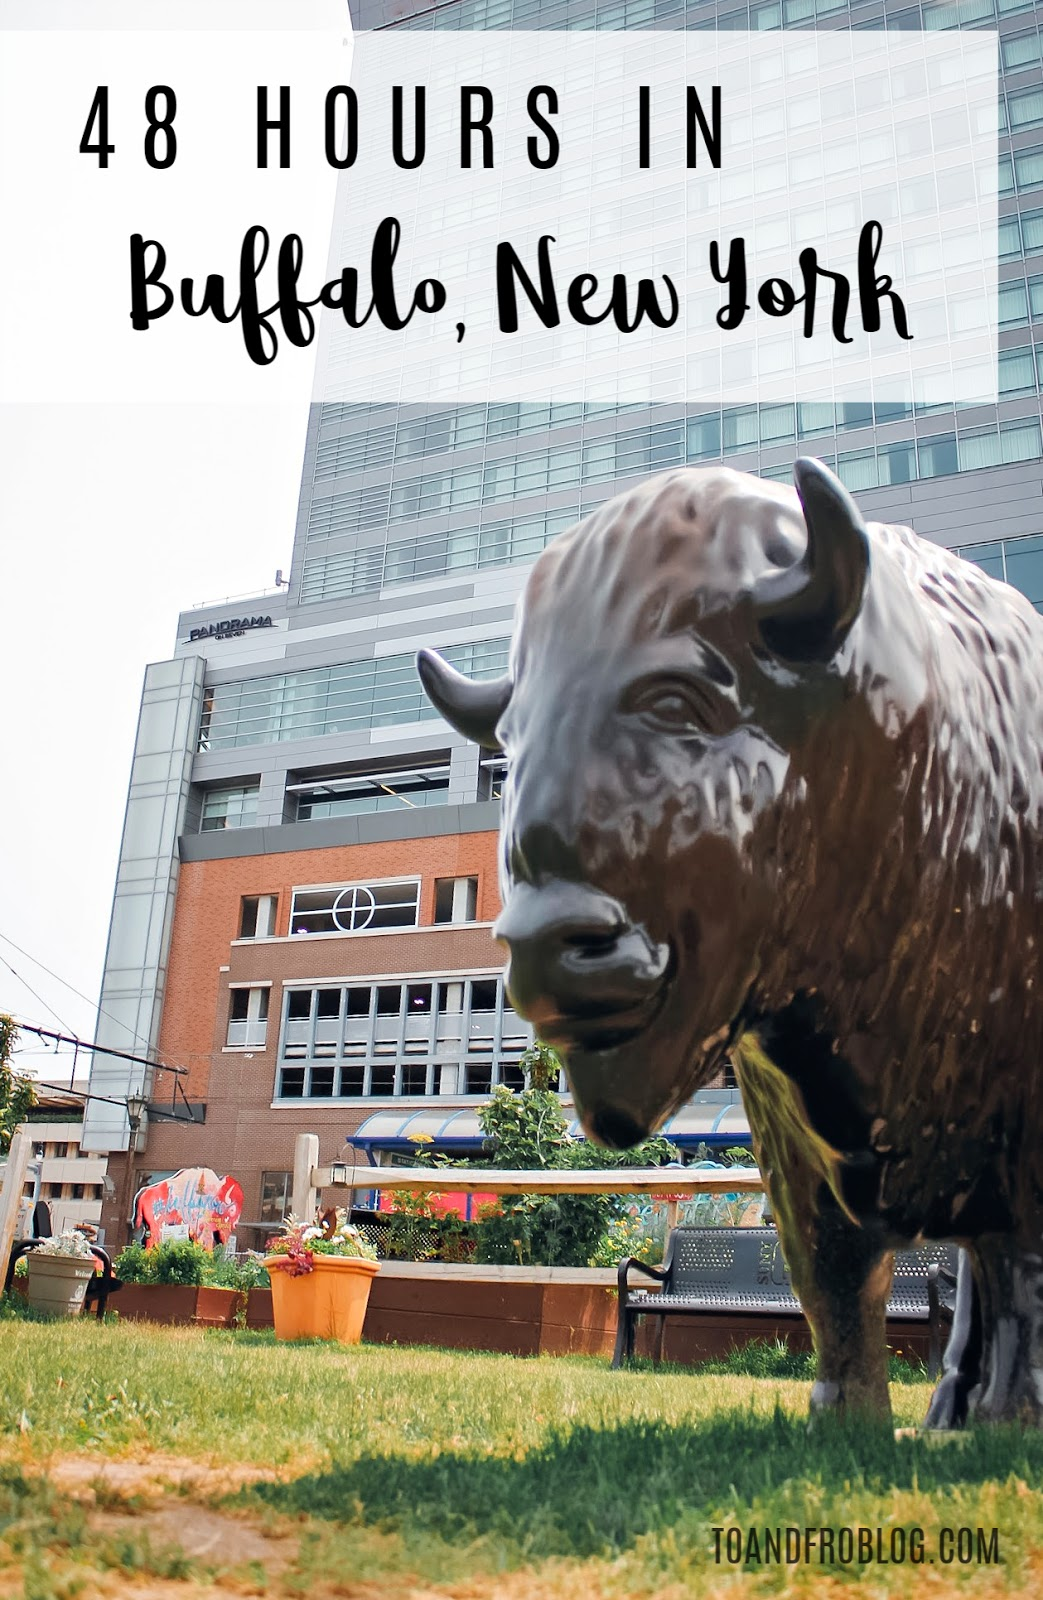 What to see and do in 48 hours in Buffalo, New York